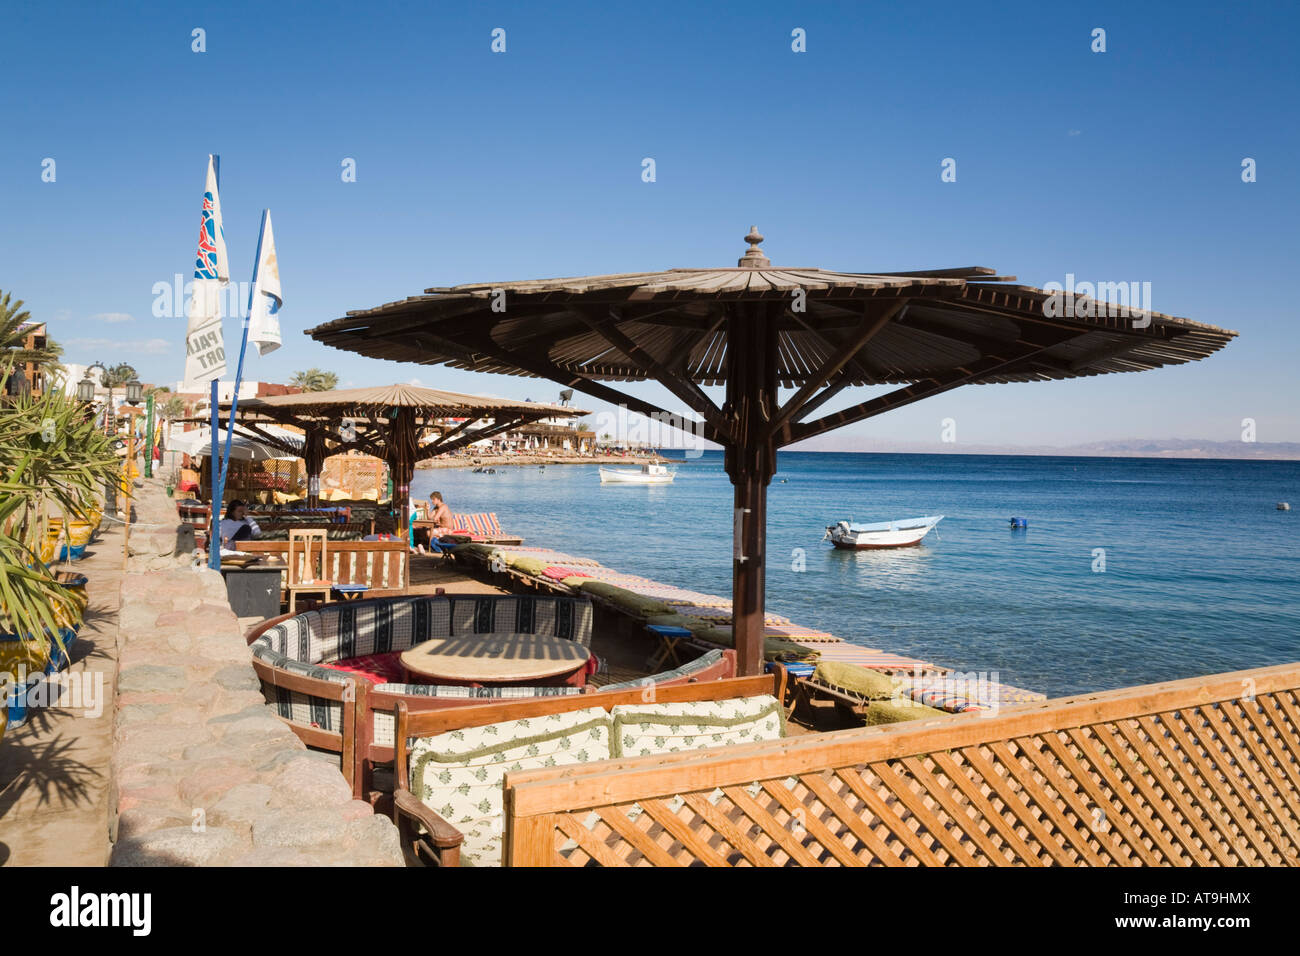 Dahab Sinai Peninsula Gulf of Aqaba Egypt Asia outdoor cafe and bay in seaside resort on Red Sea east coast - Stock Image